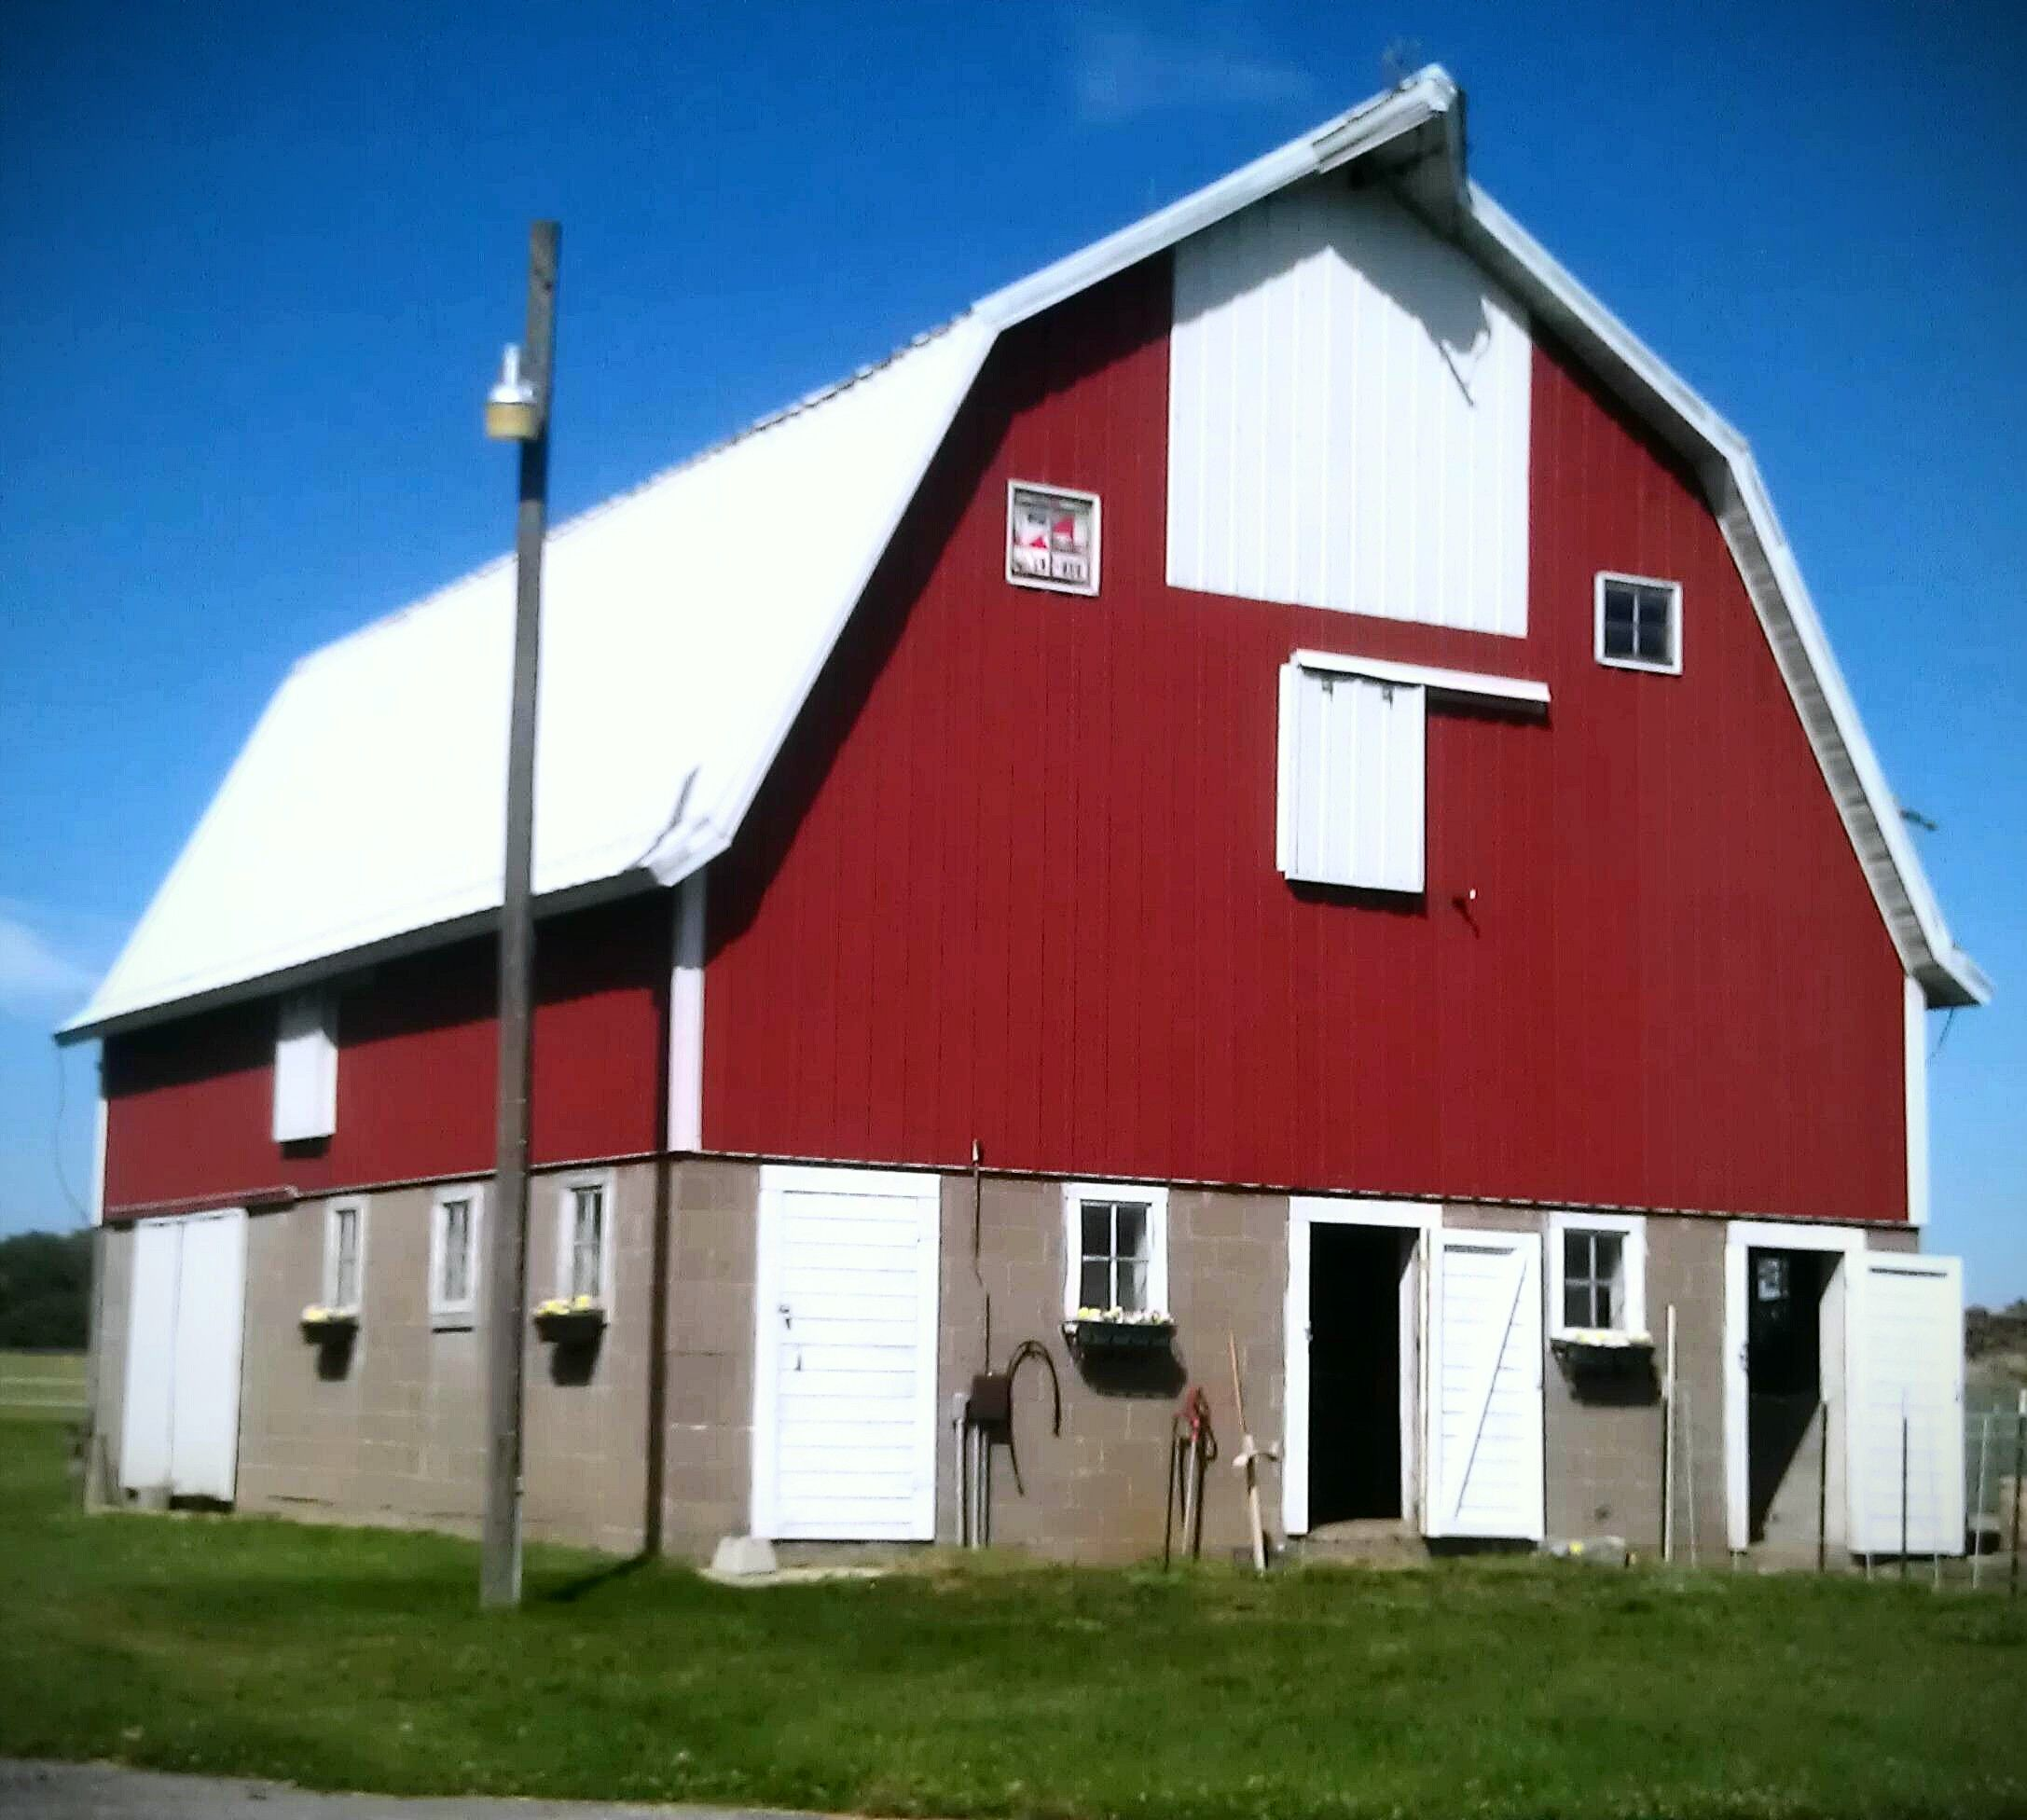 Interesting Metal Barns Turned Into Homes To Inspire Your Decorating Inspiring Ideas Gorgeous Pictures Of